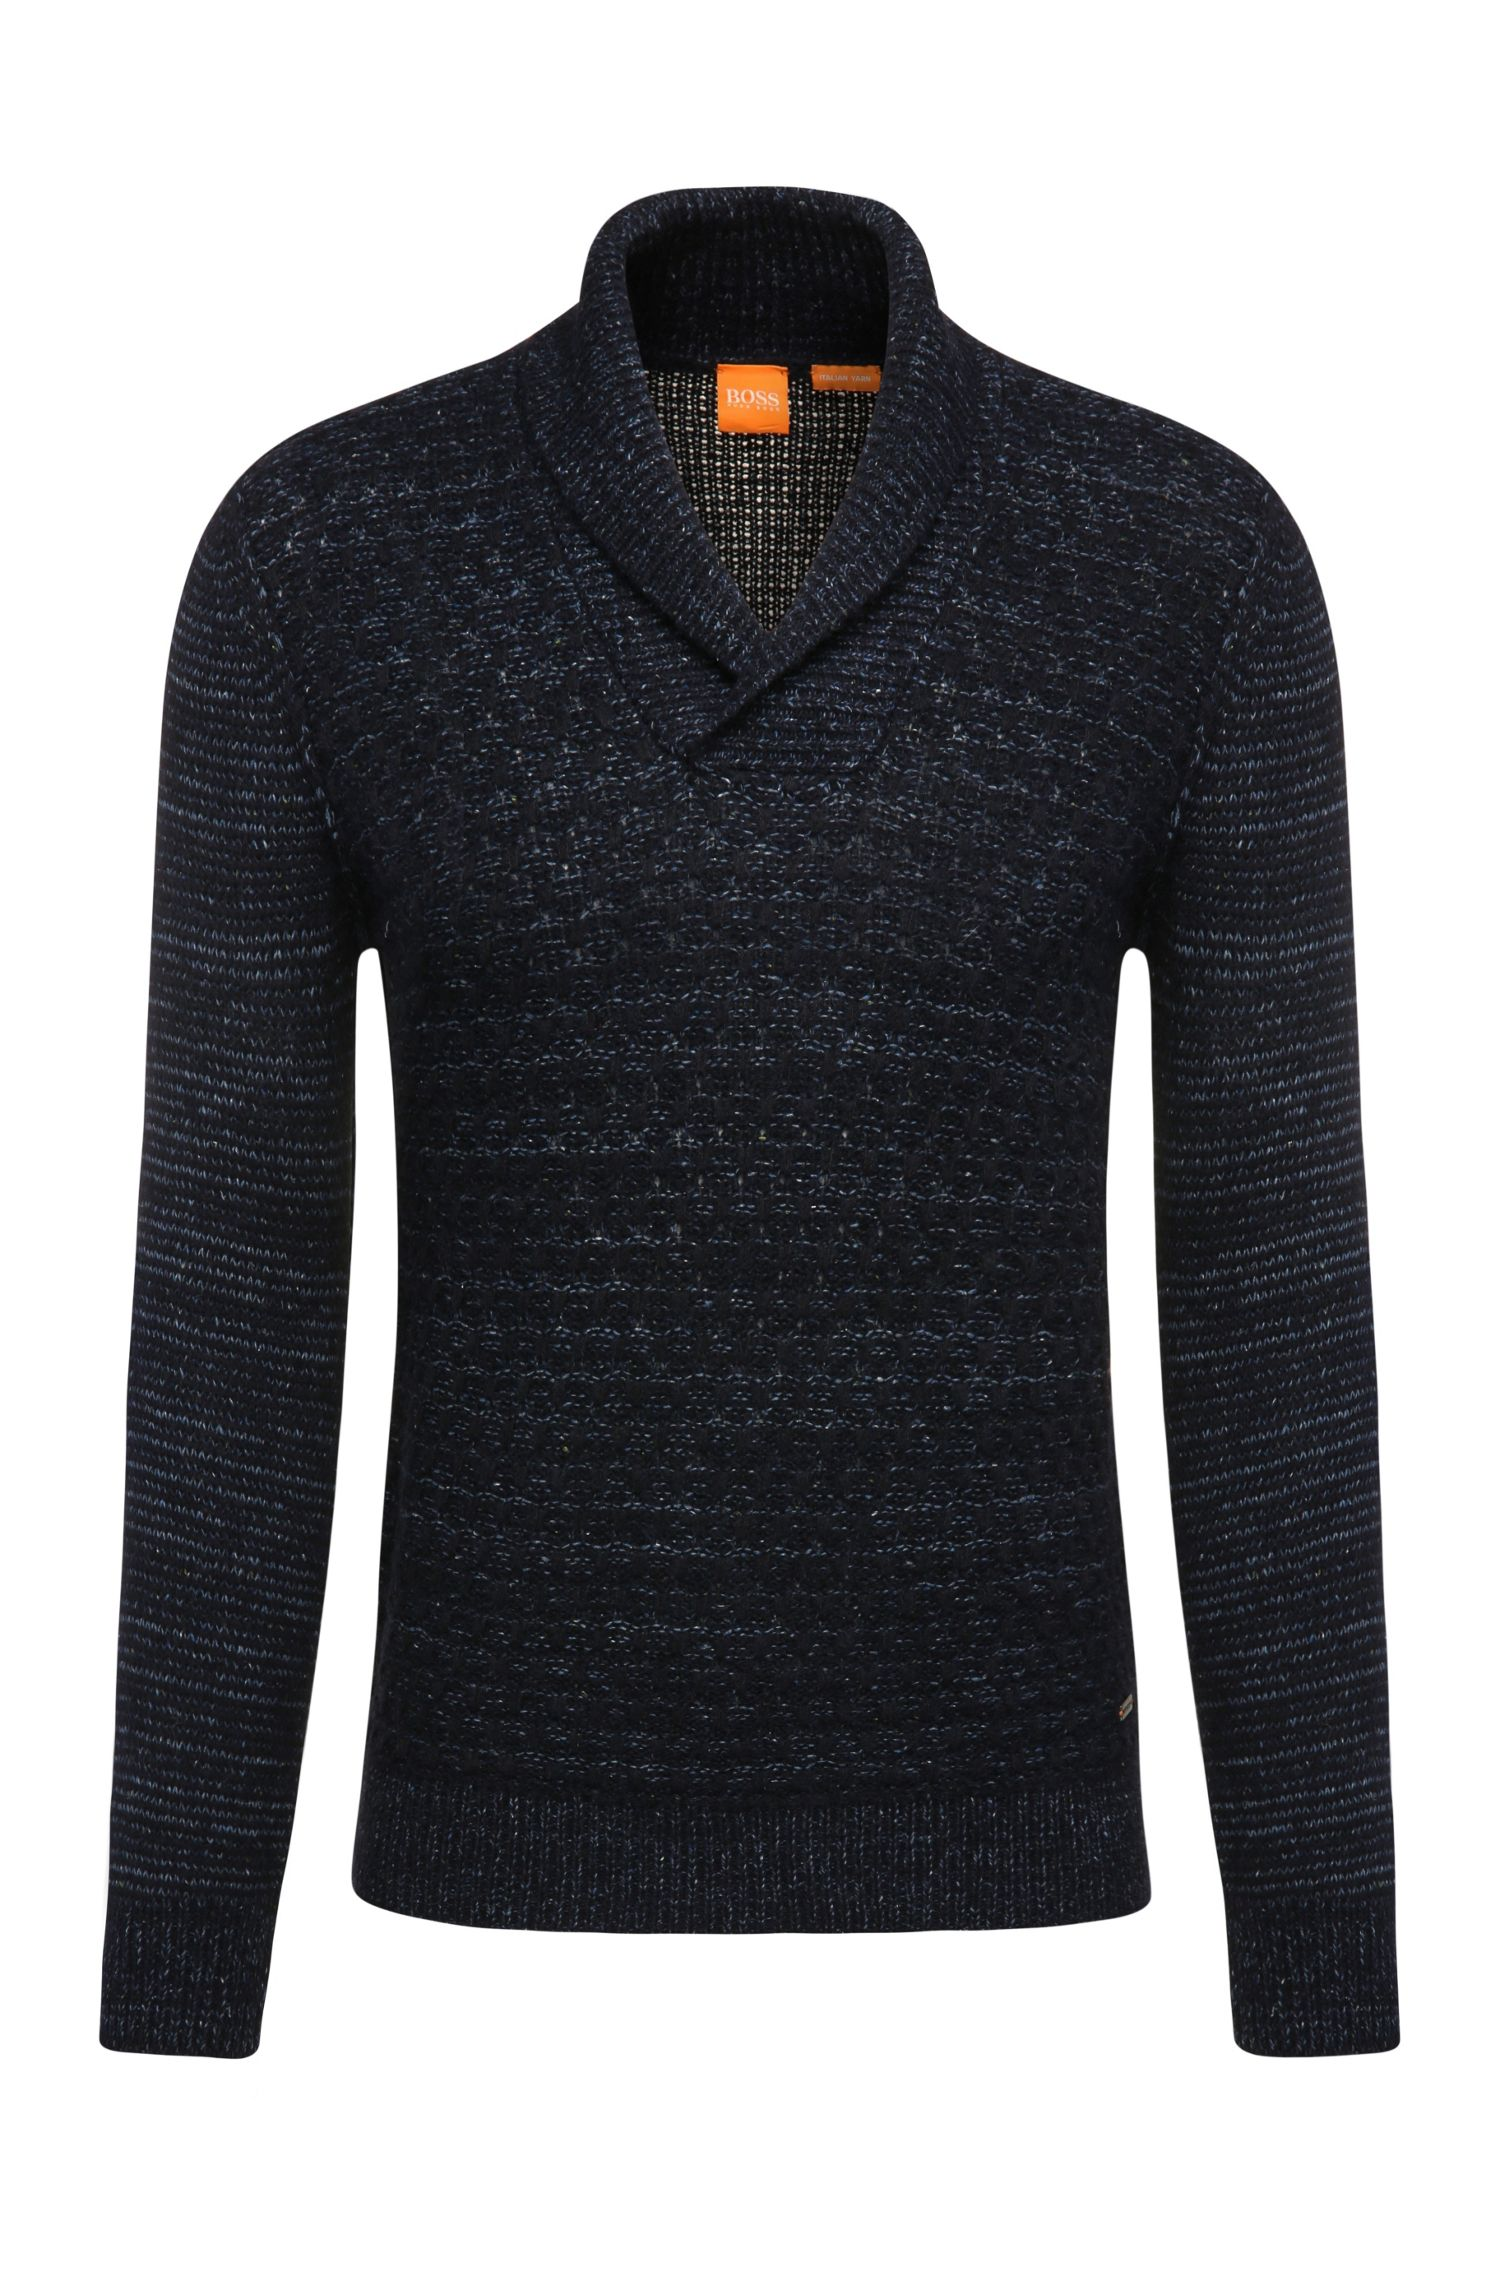 Slim-fit sweater in fabric blend with wool, viscose, alpaca and silk: 'Kwaul'